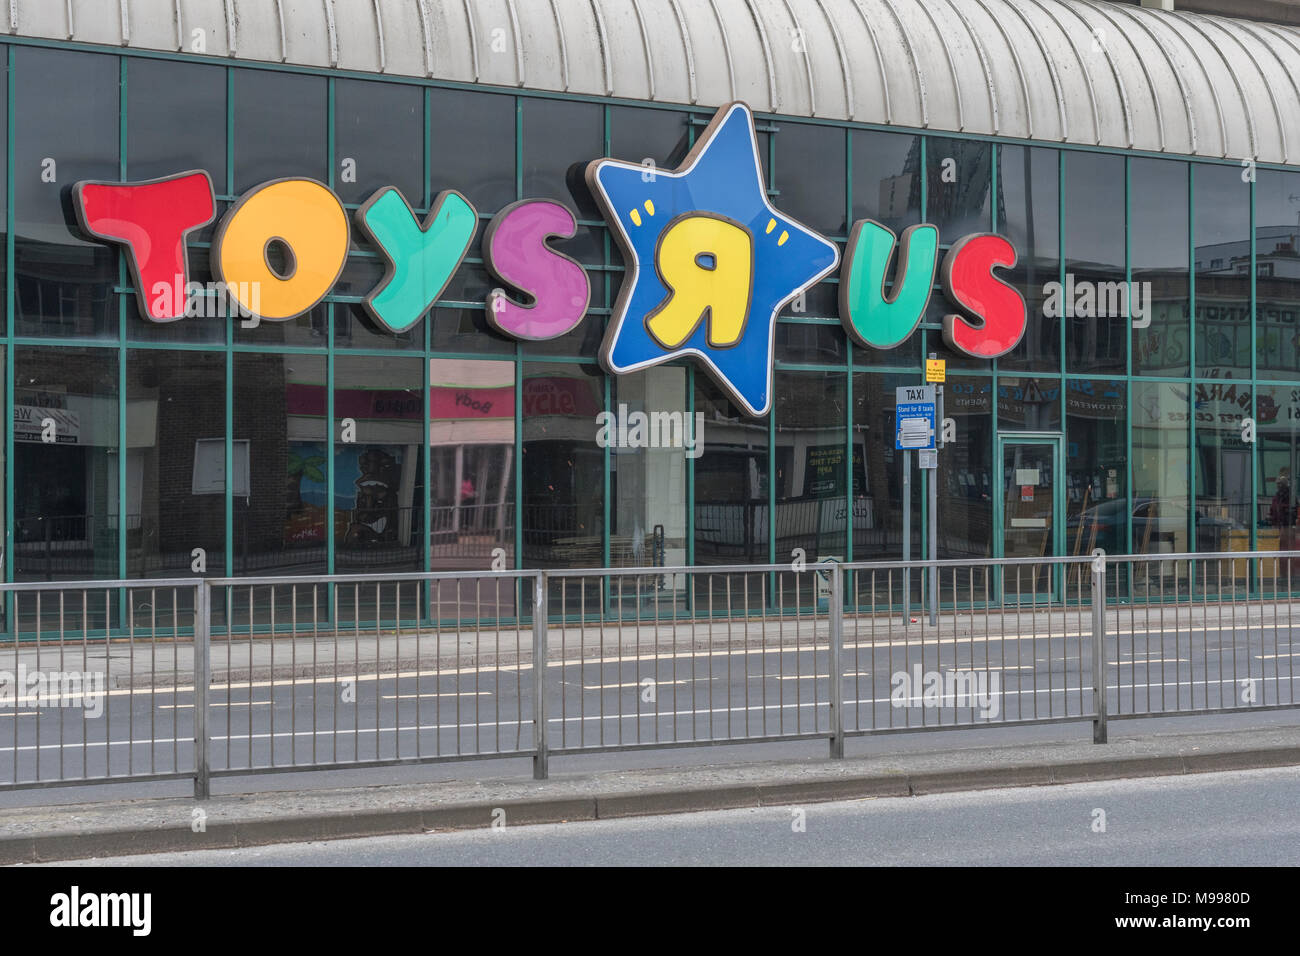 Front of the closed Toys R Us shop in Plymouth, Devon. Metaphor for high street retail casualties. Death of the high street metaphor. - Stock Image